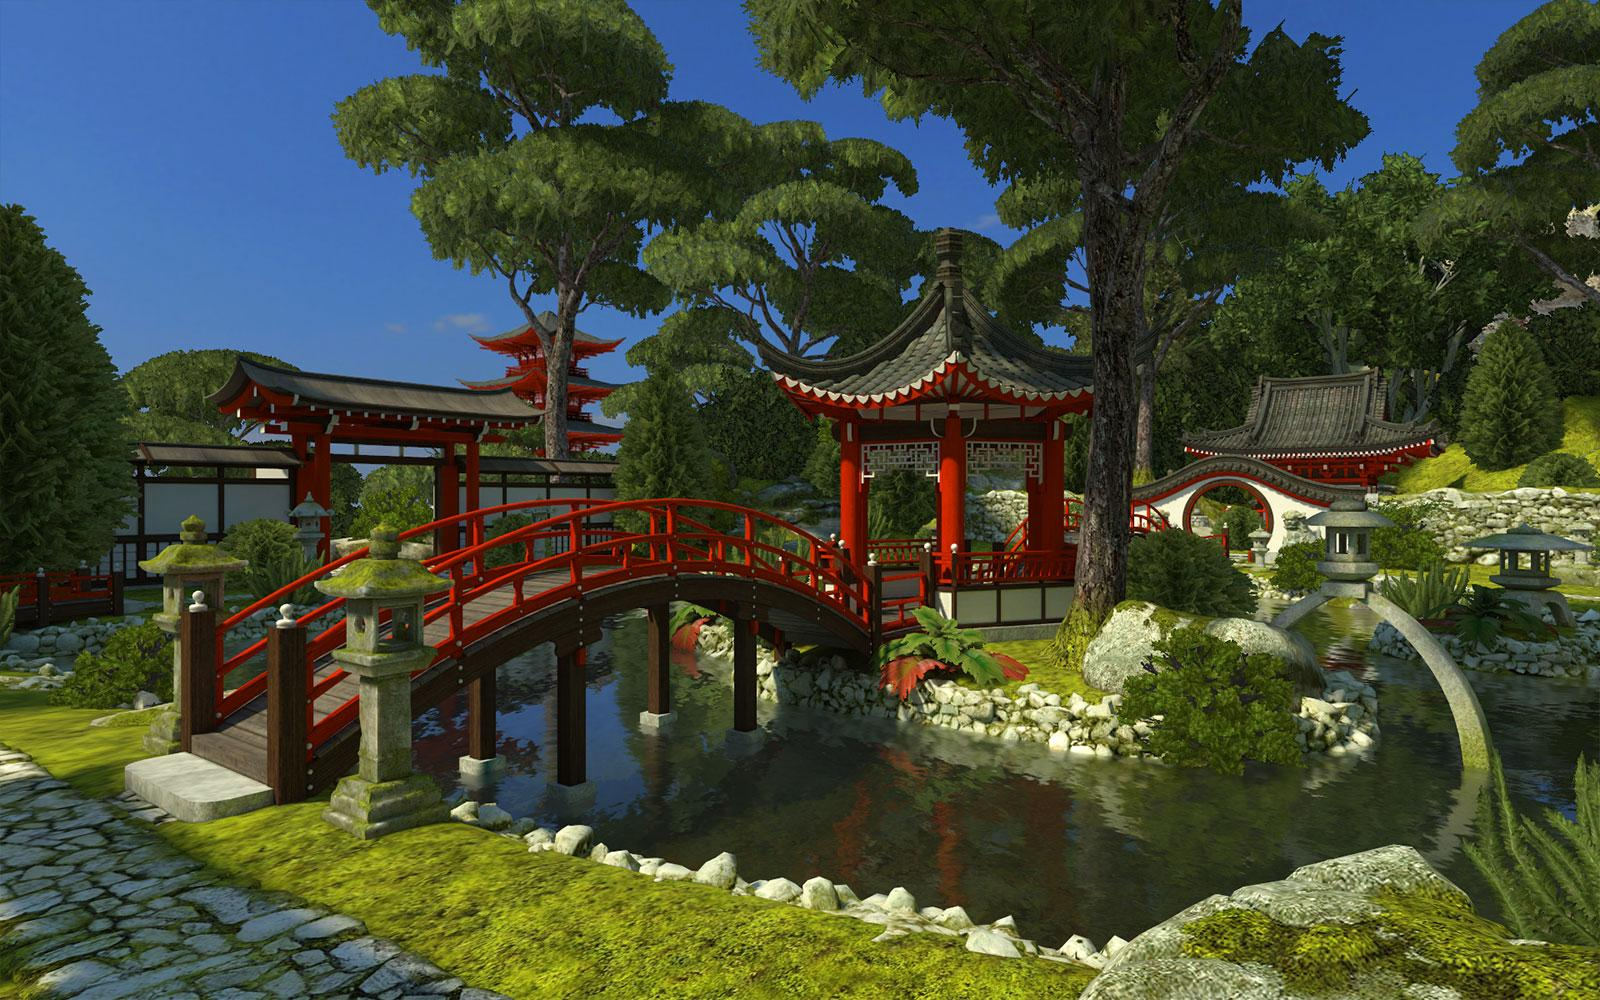 Japanese Garden 3D Screensaver - Download Animated 3D ...